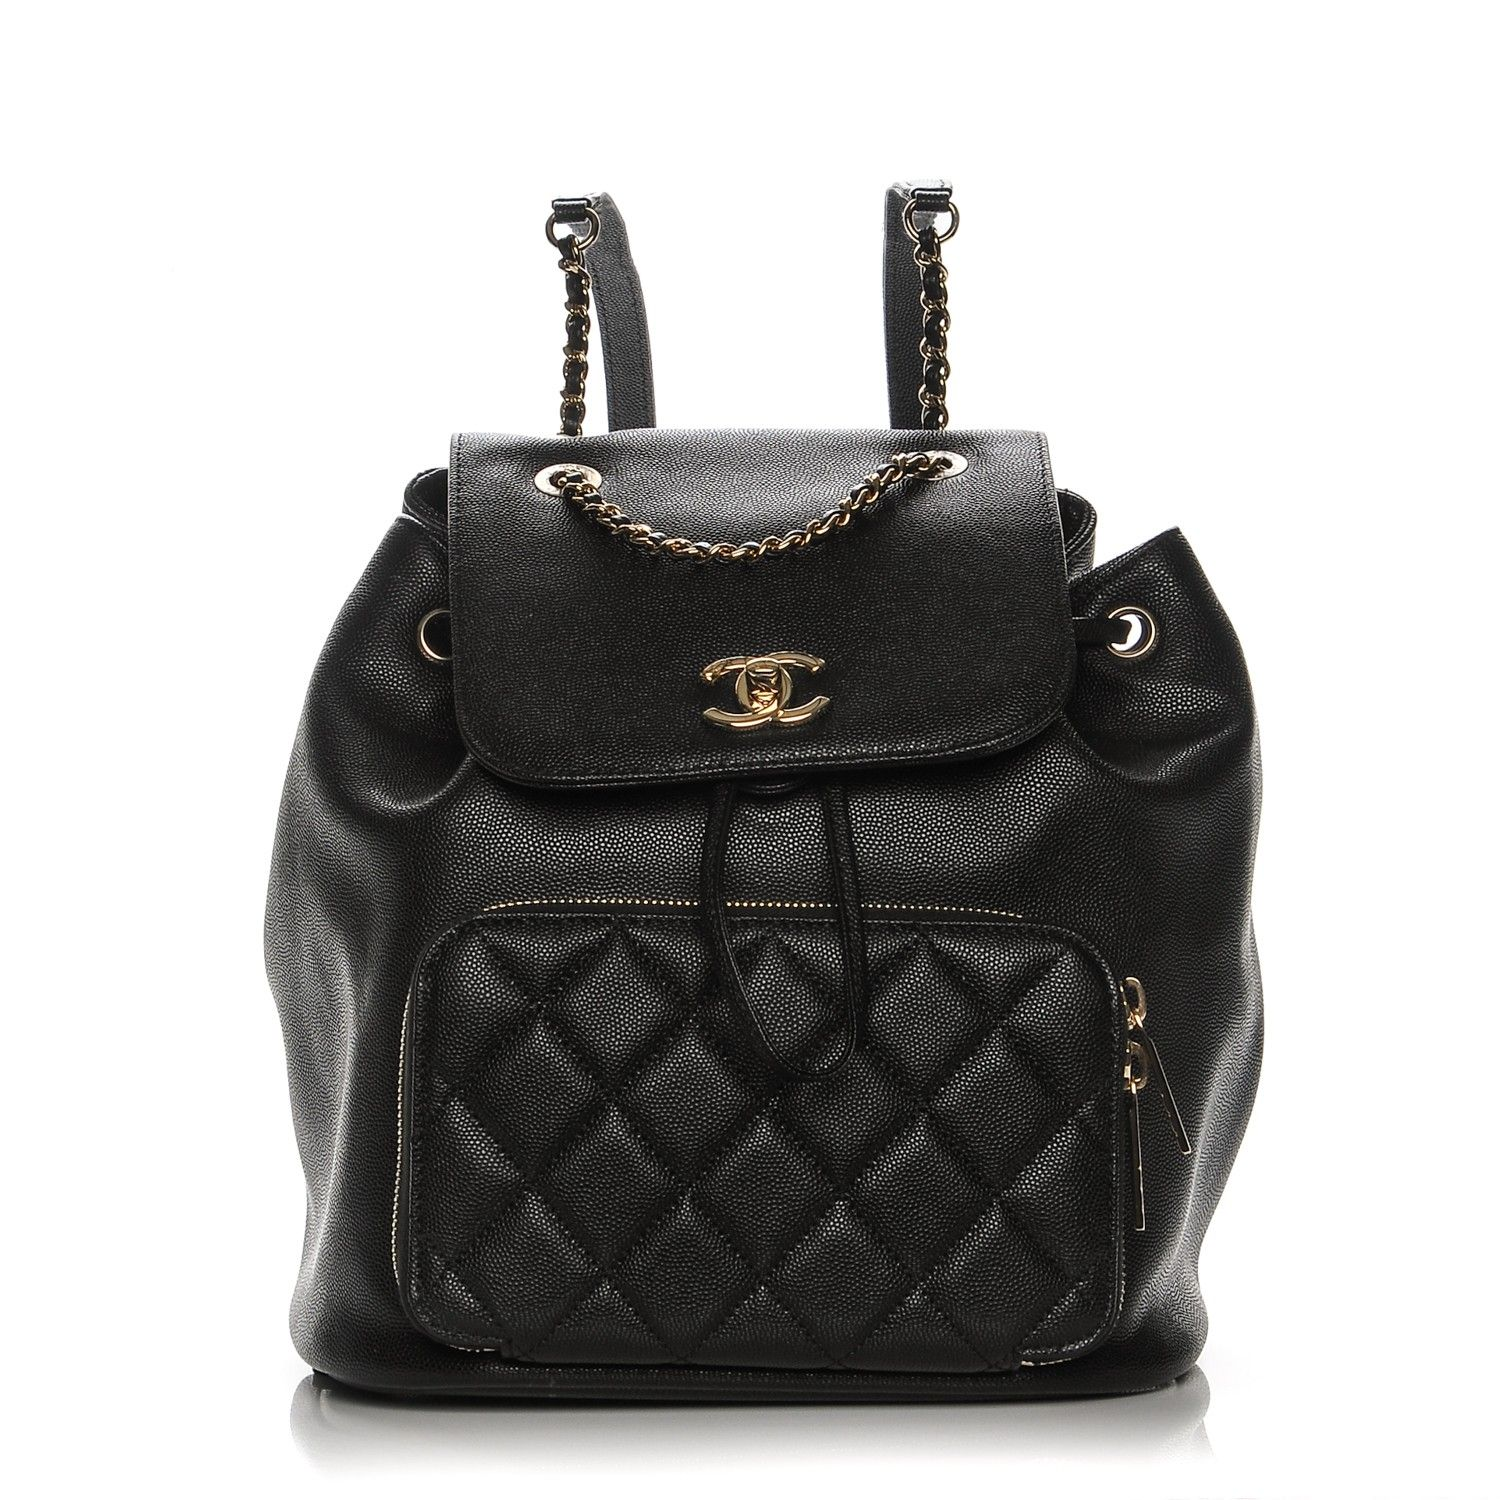 3264b589a980 This is an authentic CHANEL Caviar Quilted Business Affinity Backpack in  Black. This stylish backpack is beautifully crafted of caviar leather in  black.